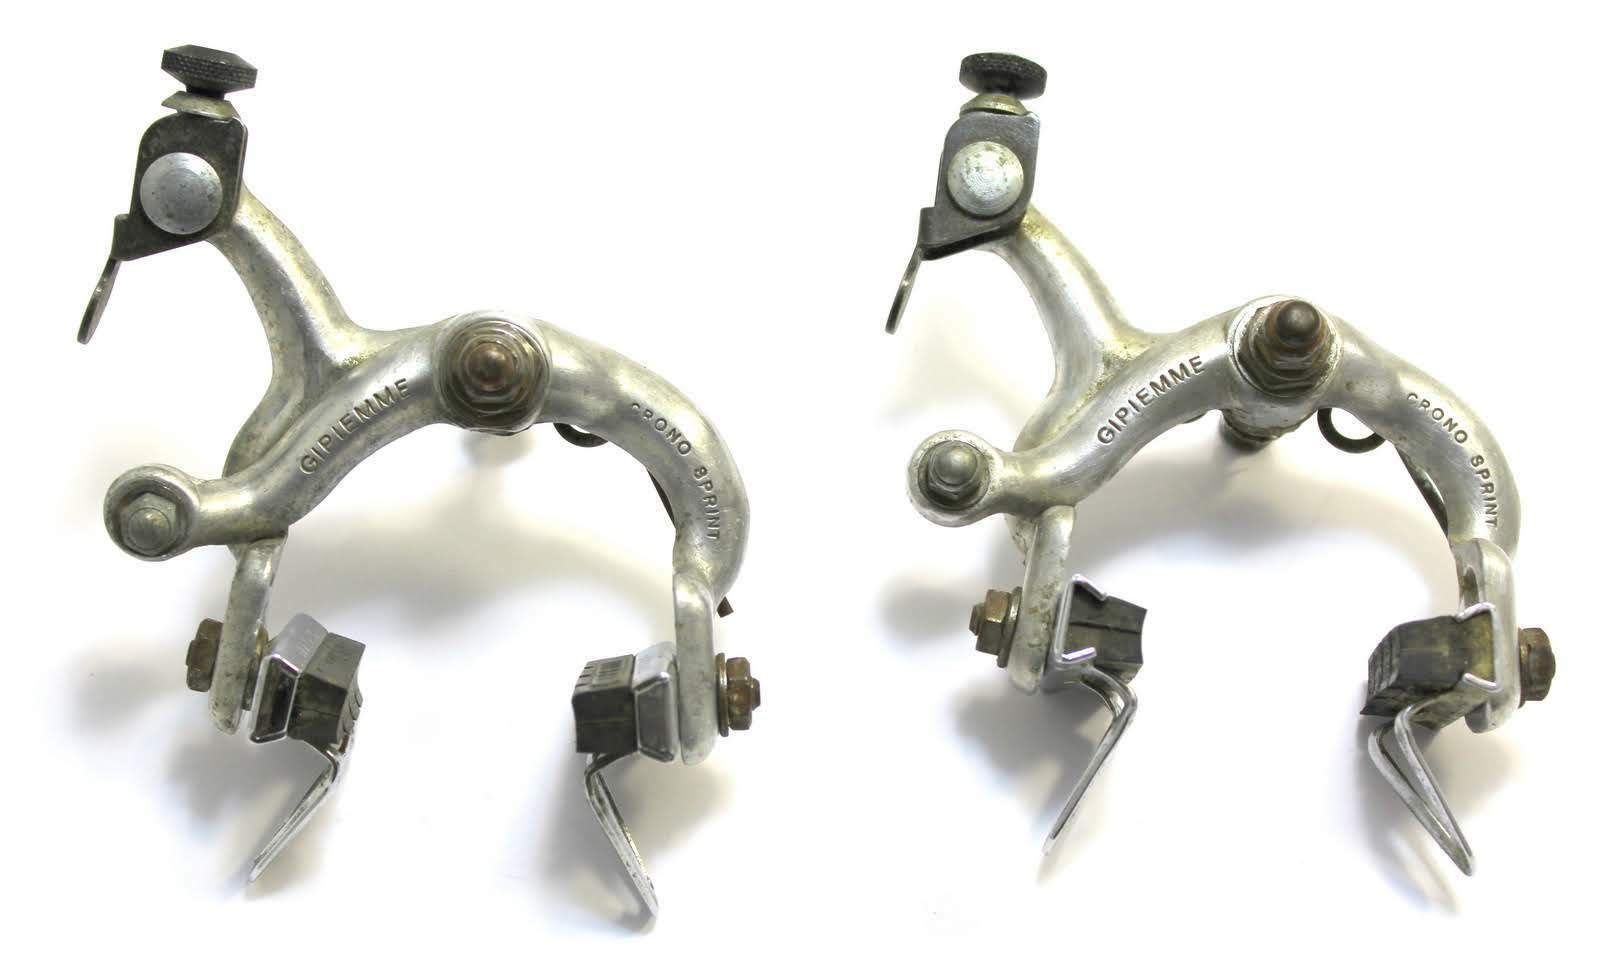 Vintage Race Bike Made  in  Gipiemme CRONOSPRINT Brake Calipers Clips  save up to 70% discount